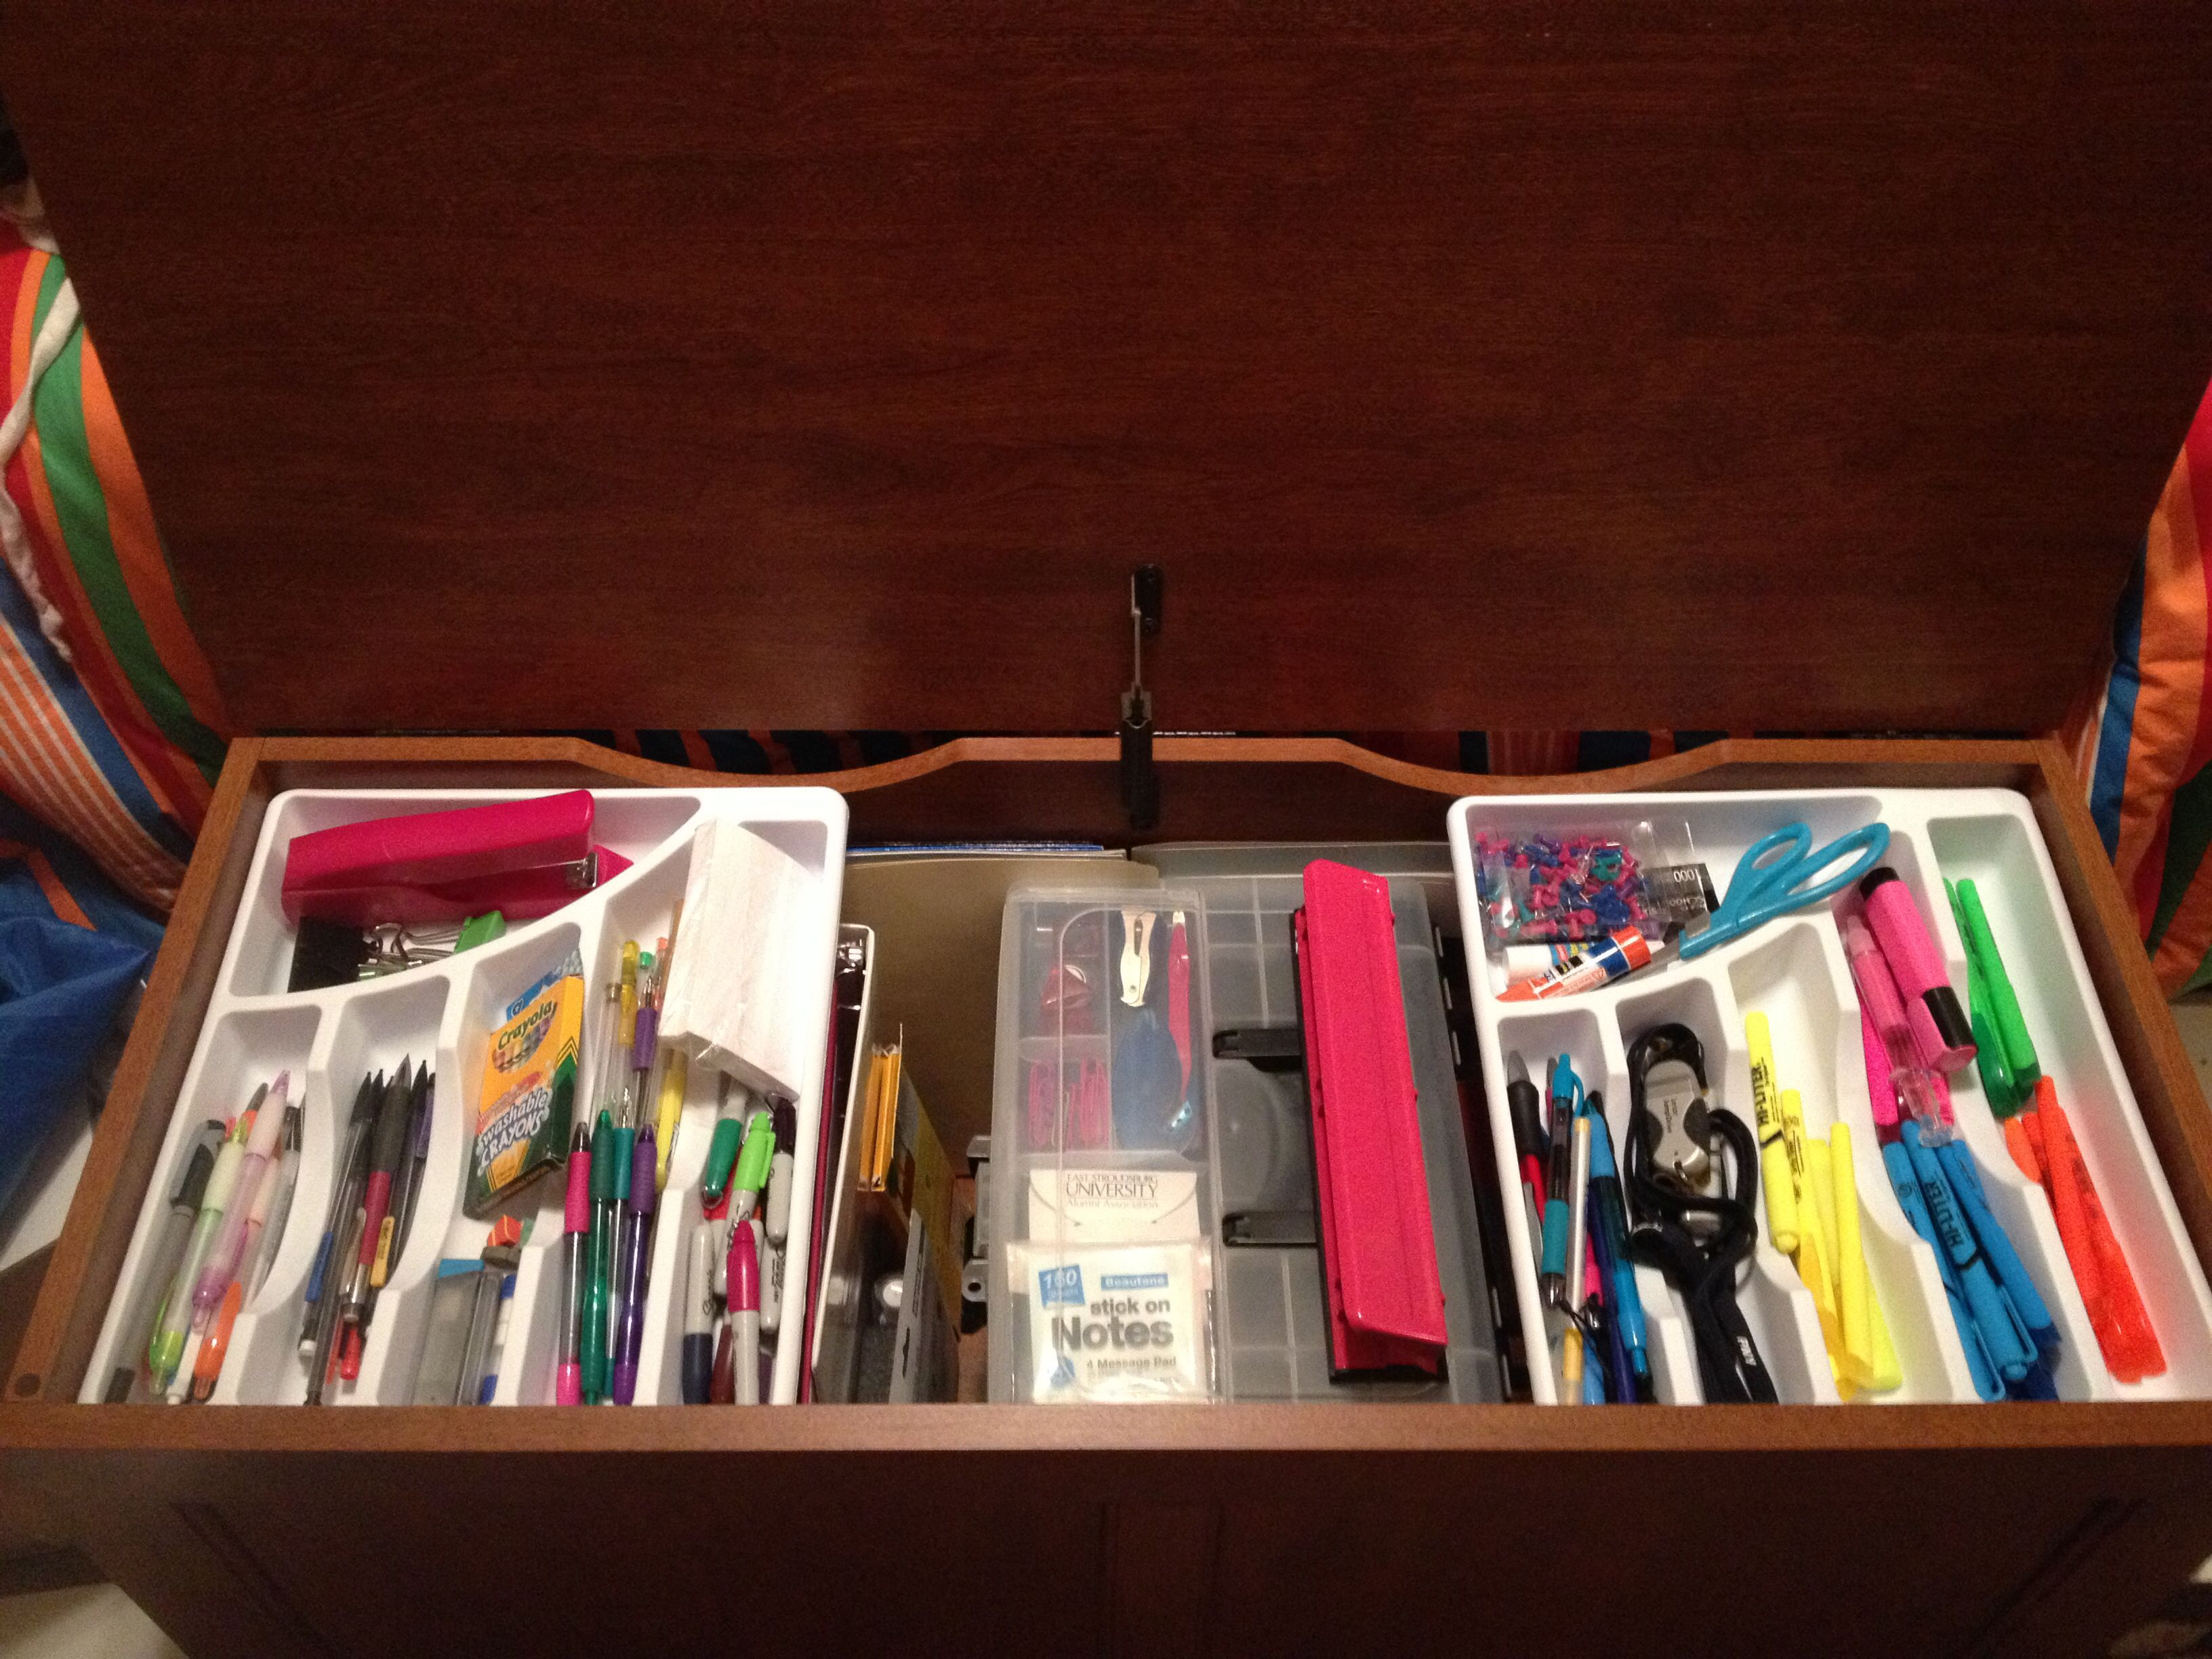 My desk doesn t have drawers so I used cutlery organizers cheap at Walmart for pens pencils etc on top